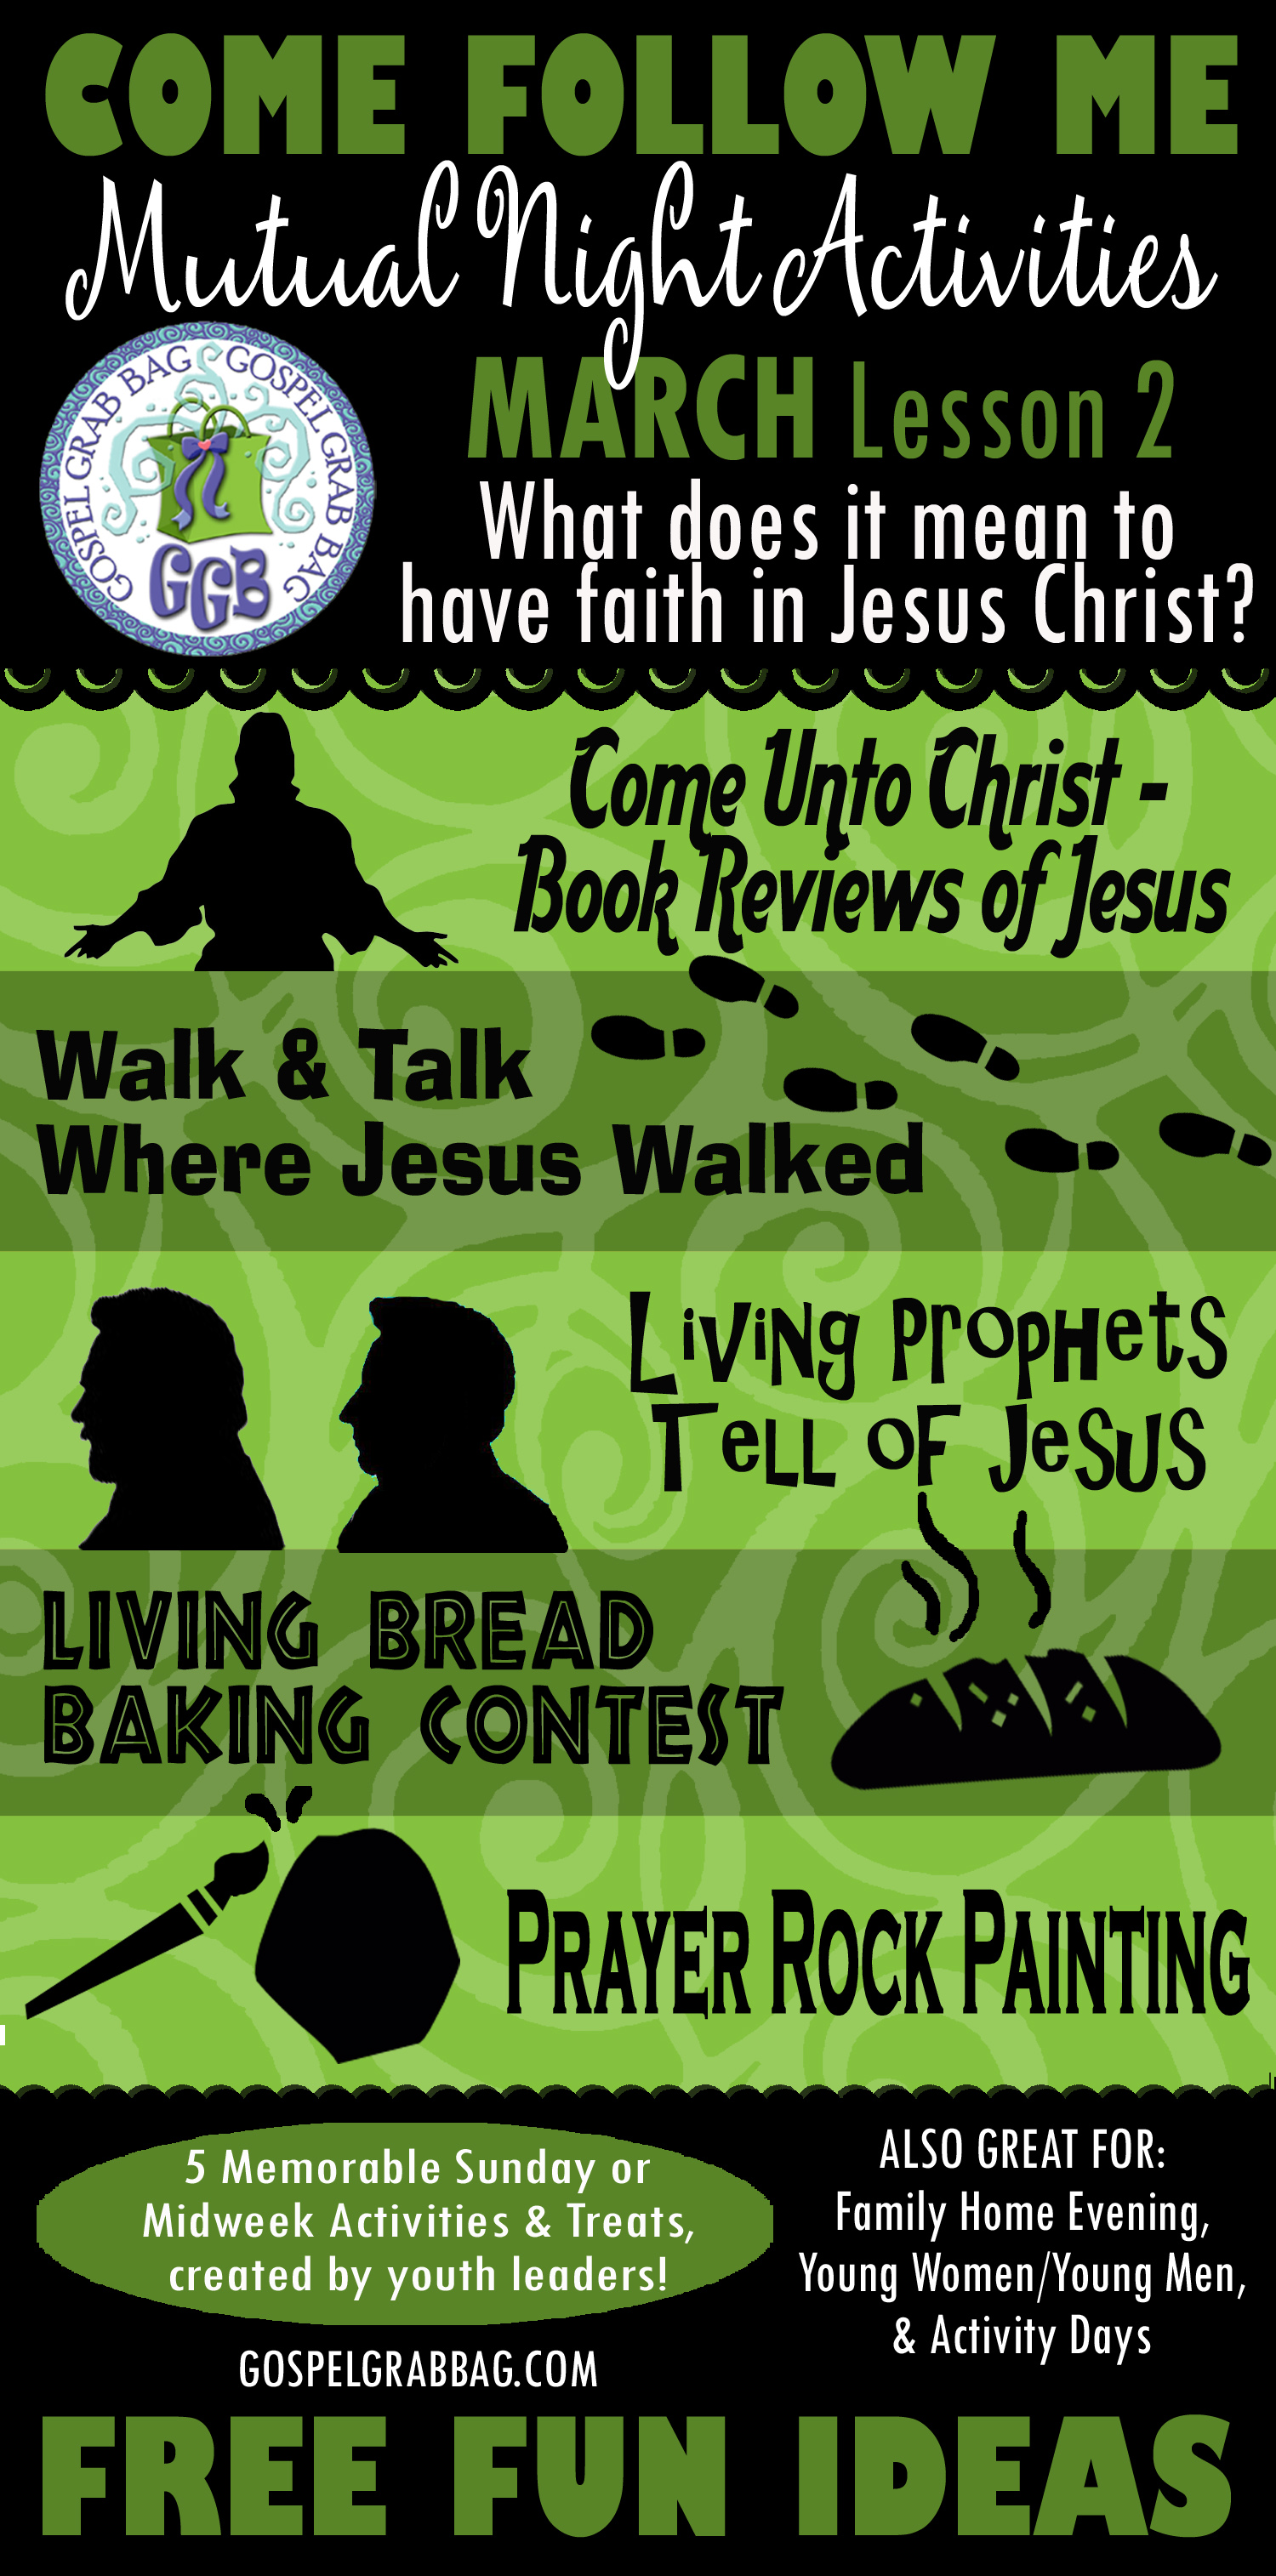 """MUTUAL NIGHT IDEAS: March Lesson #2 Come Follow Me Lesson Activities - Theme: """"What does it mean to have faith in Jesus Christ?"""", GospelGrabBag.com"""